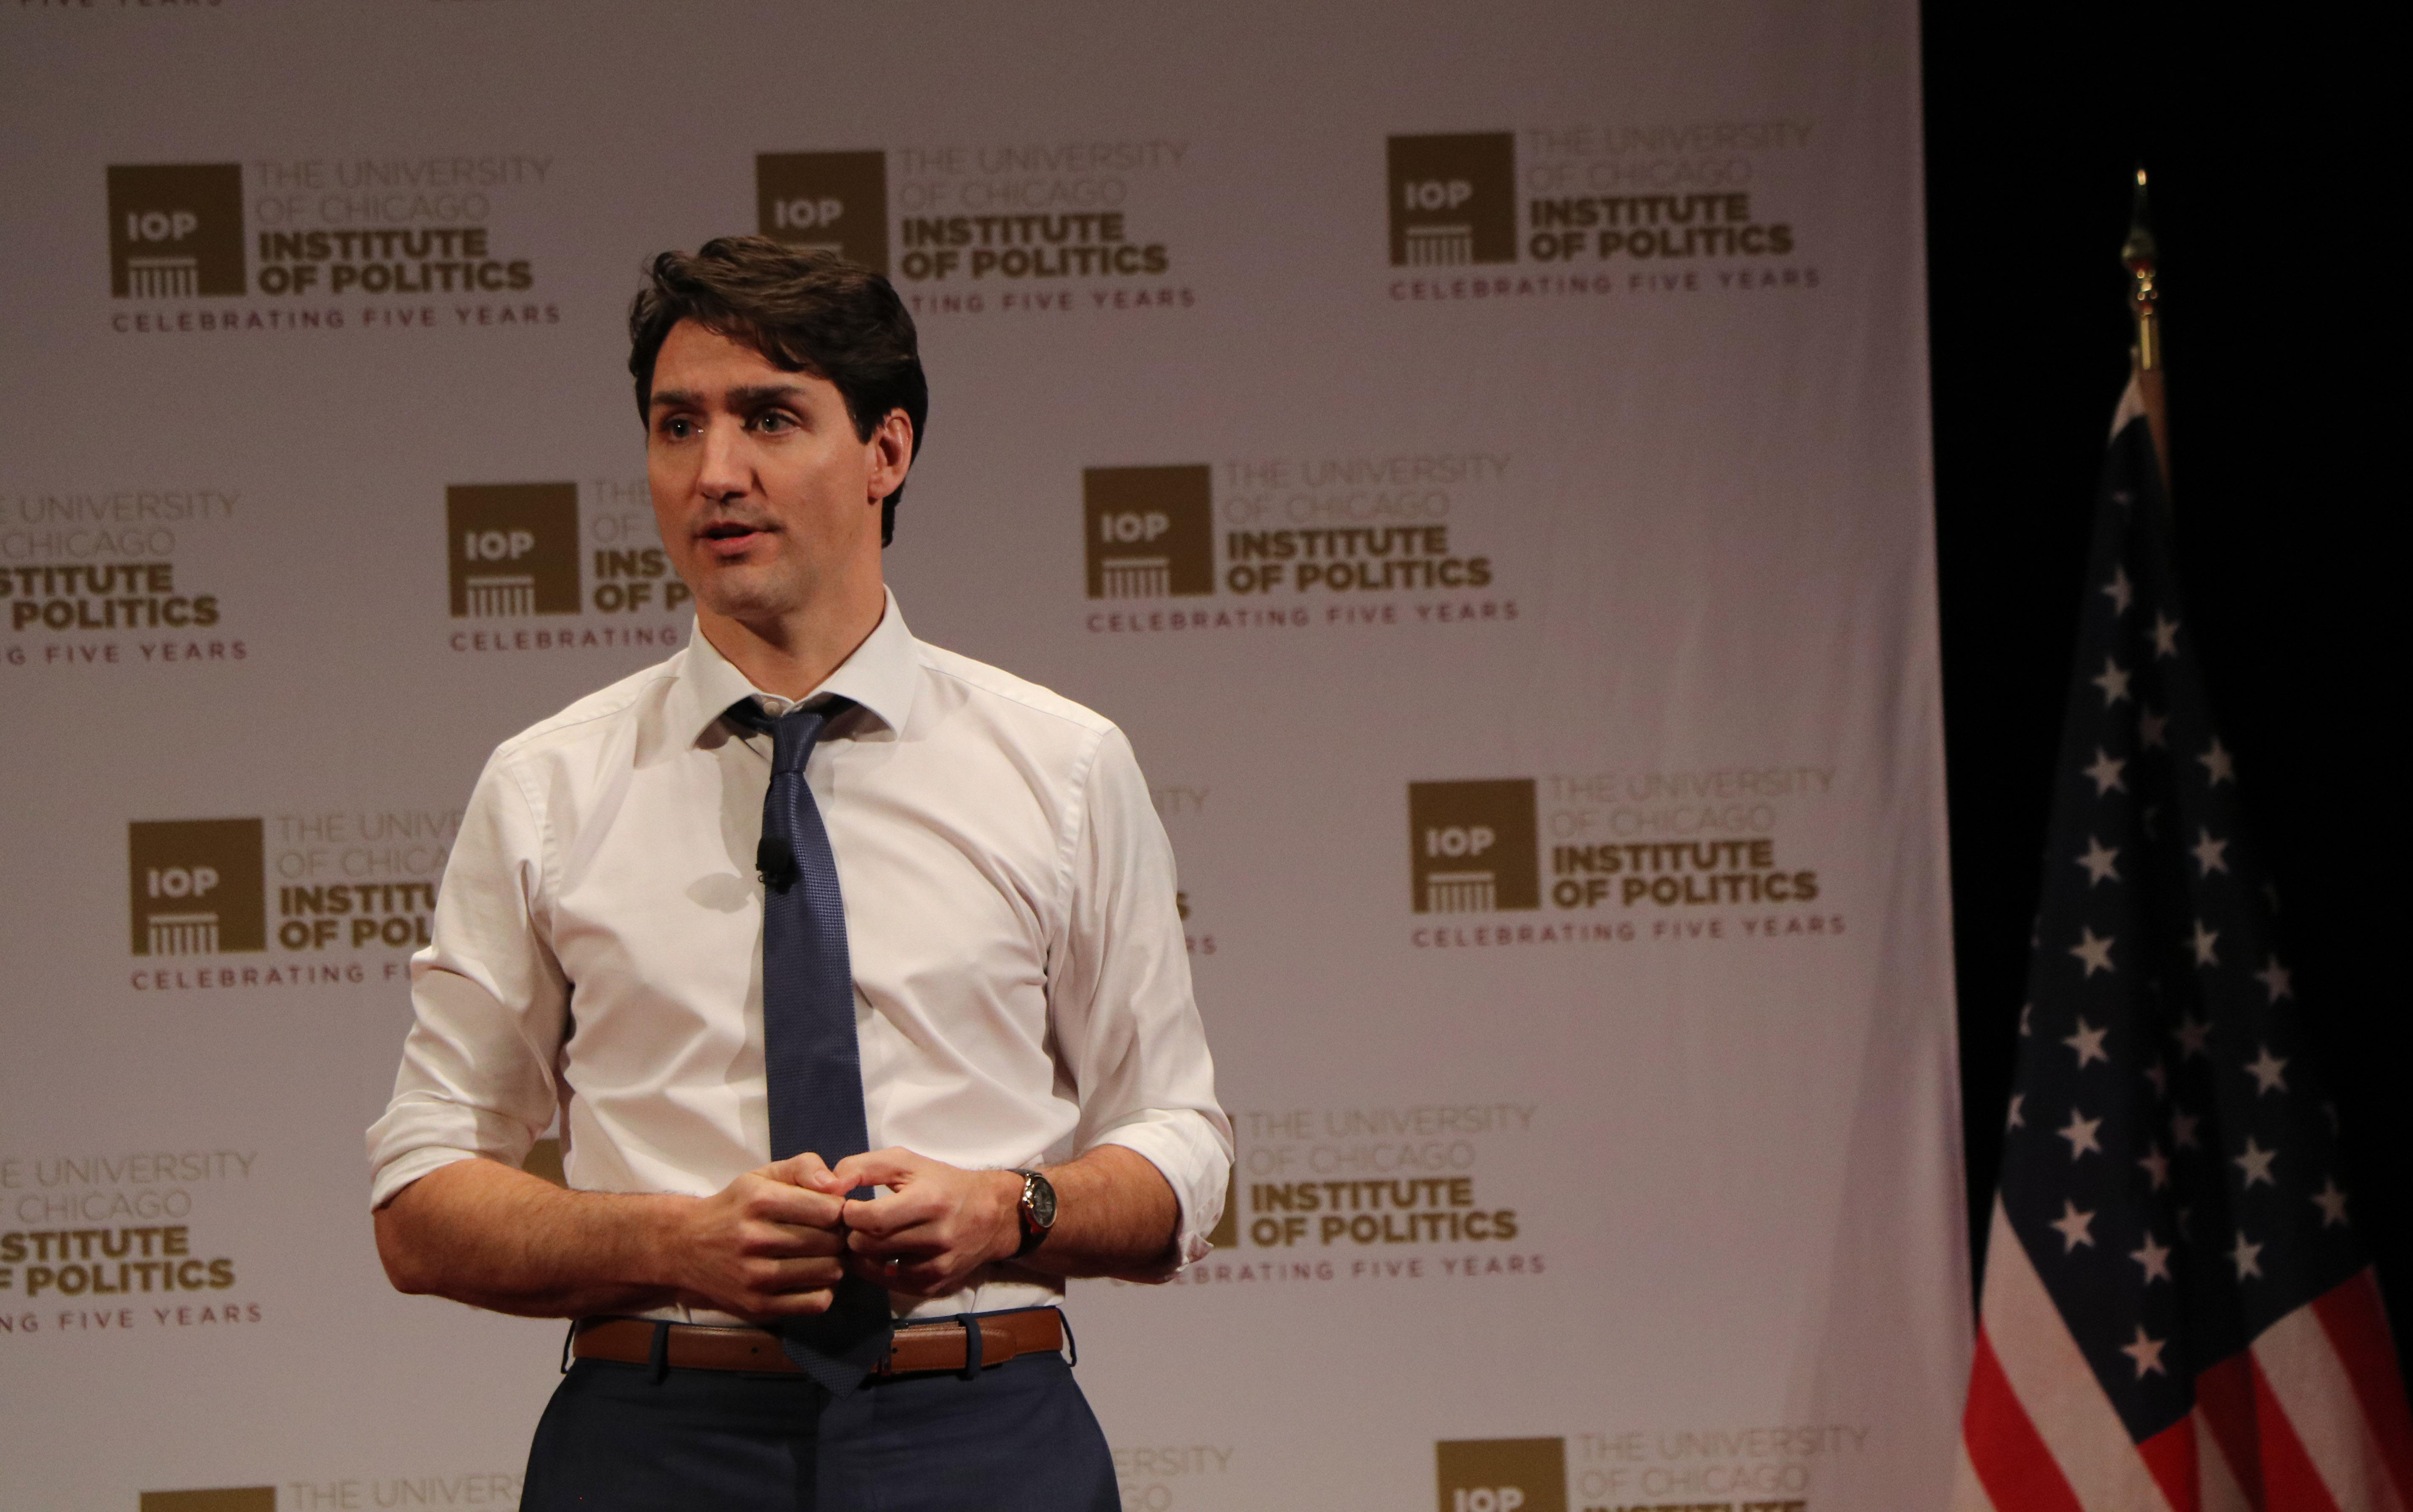 Canadian Prime Minister Justin Trudeau speaks at the University of Chicago's Institute of Politics on Wednesday. (Evan Garcia / Chicago Tonight)